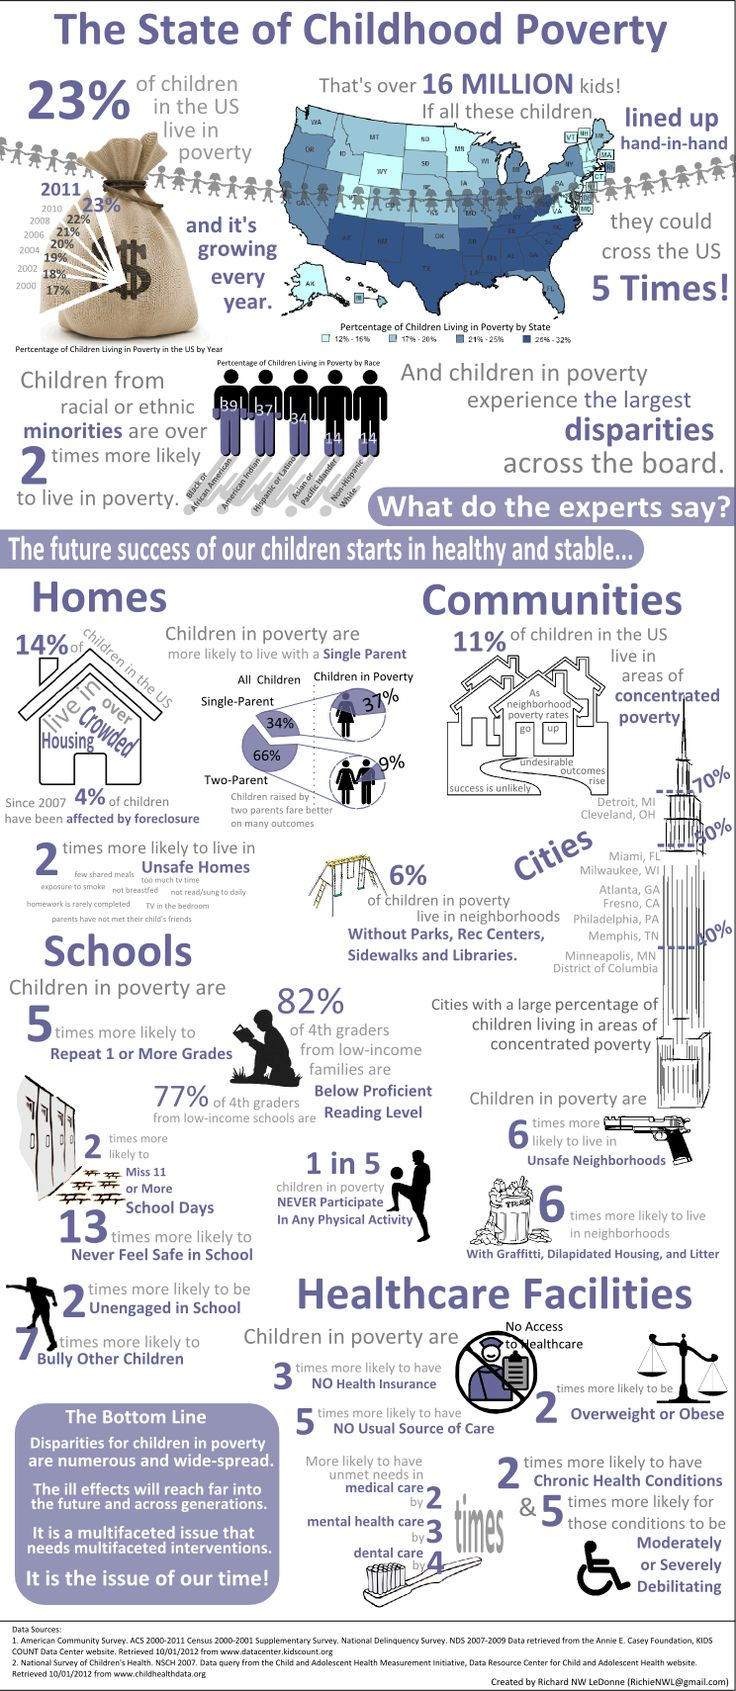 Infographic on the State of Childhood Poverty